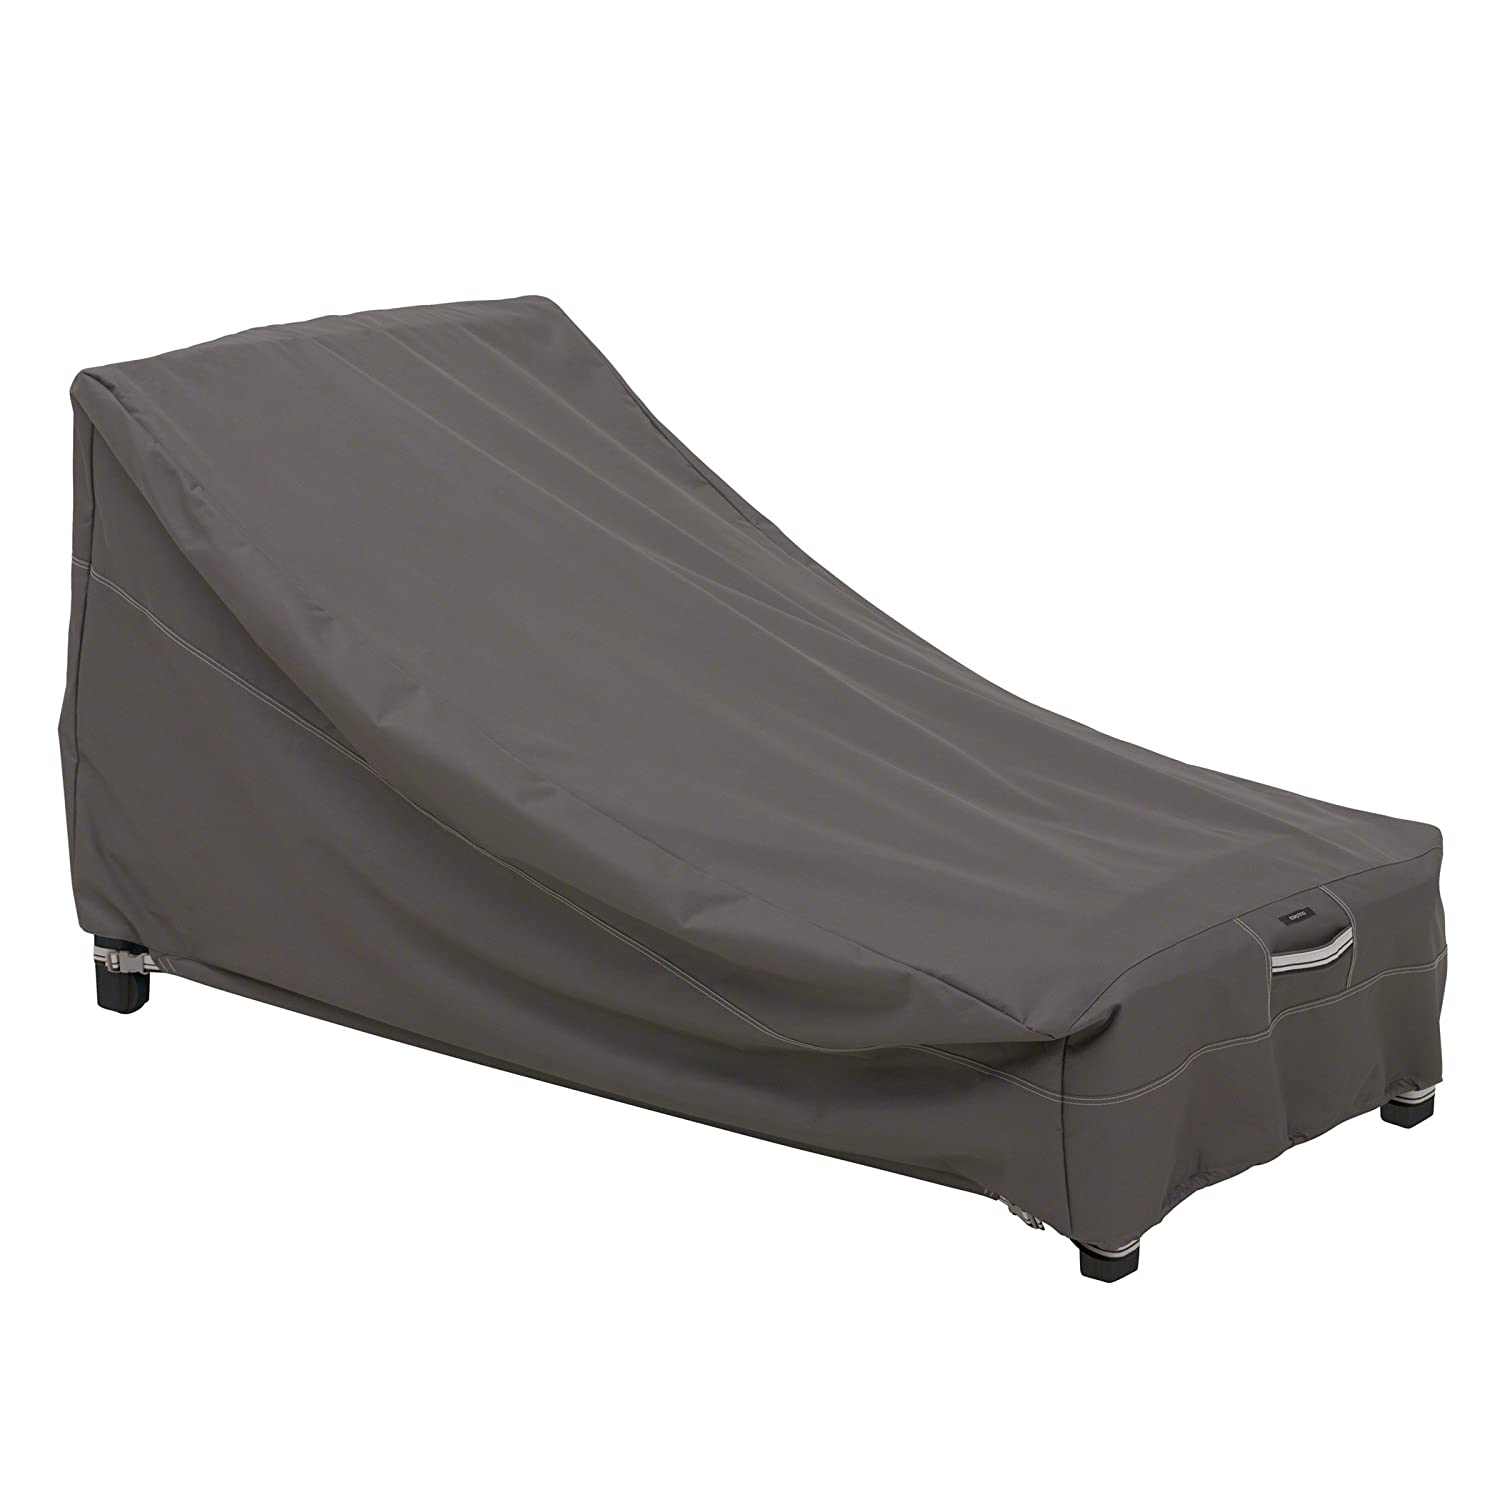 Classic Accessories 55-163-045101-EC Ravenna Patio Day Chaise Cover, Large, Taupe